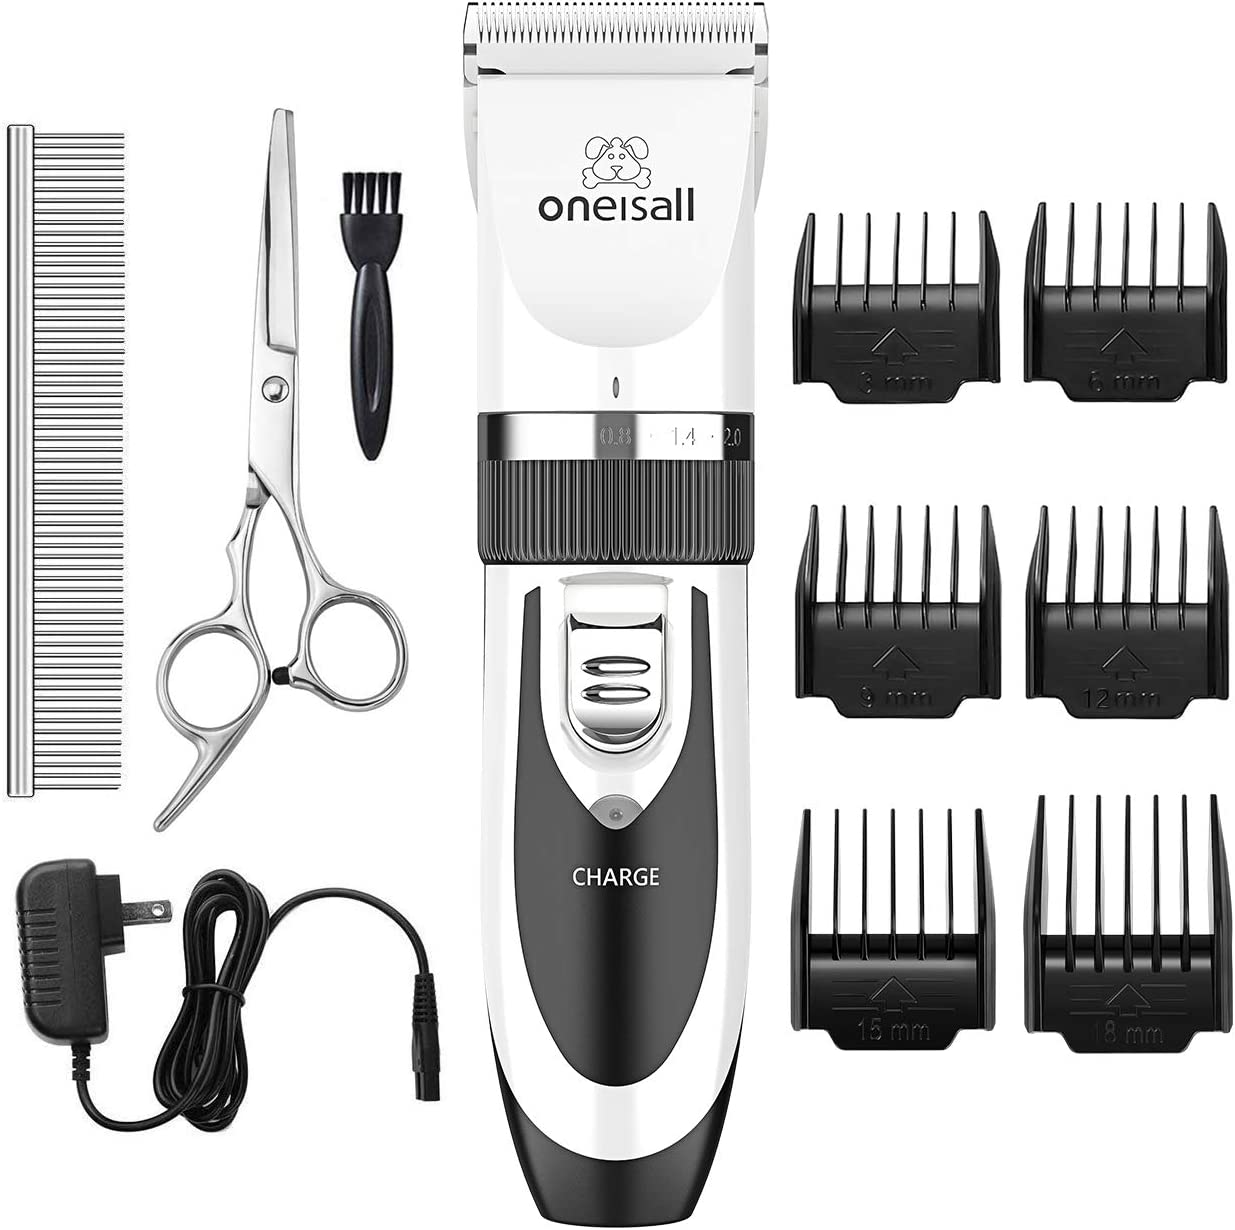 Oneisall Cordless Rechargeable Dog Shaver Clippers $29.74